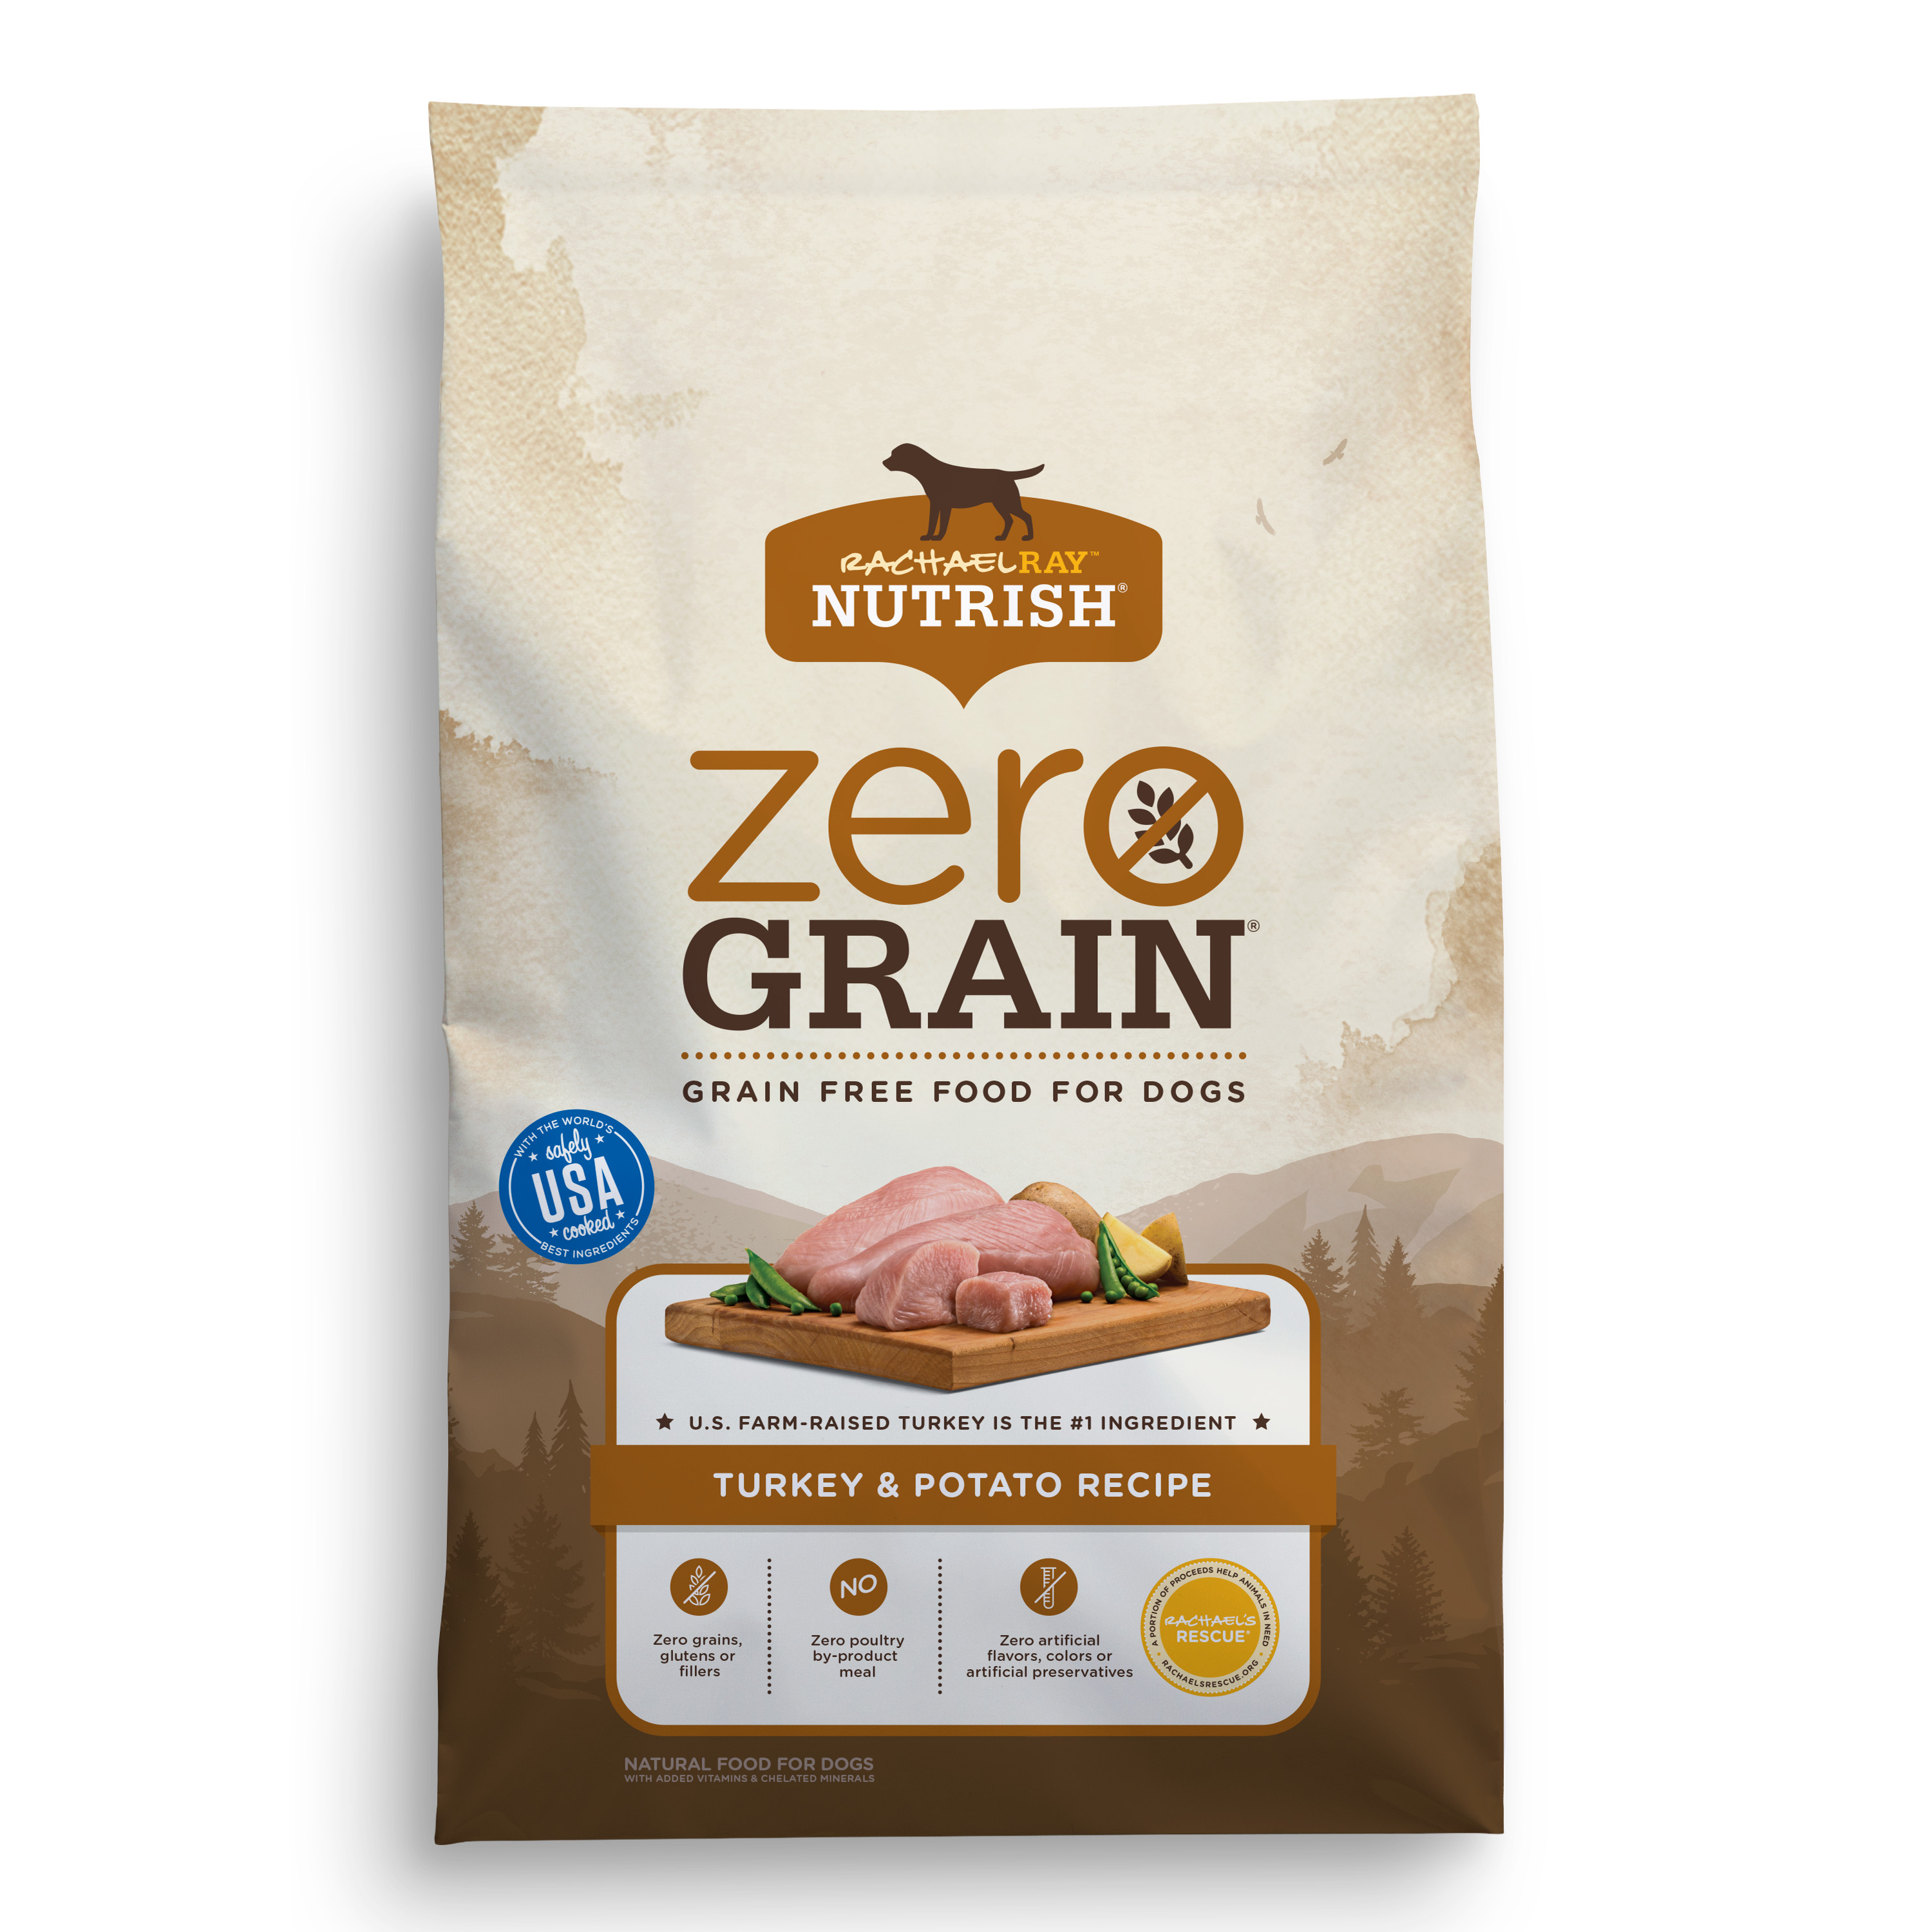 Rachael Ray Nutrish Zero Grain Natural Dry Dog Food, Grain Free, Turkey & Potato Recipe, 14 lbs